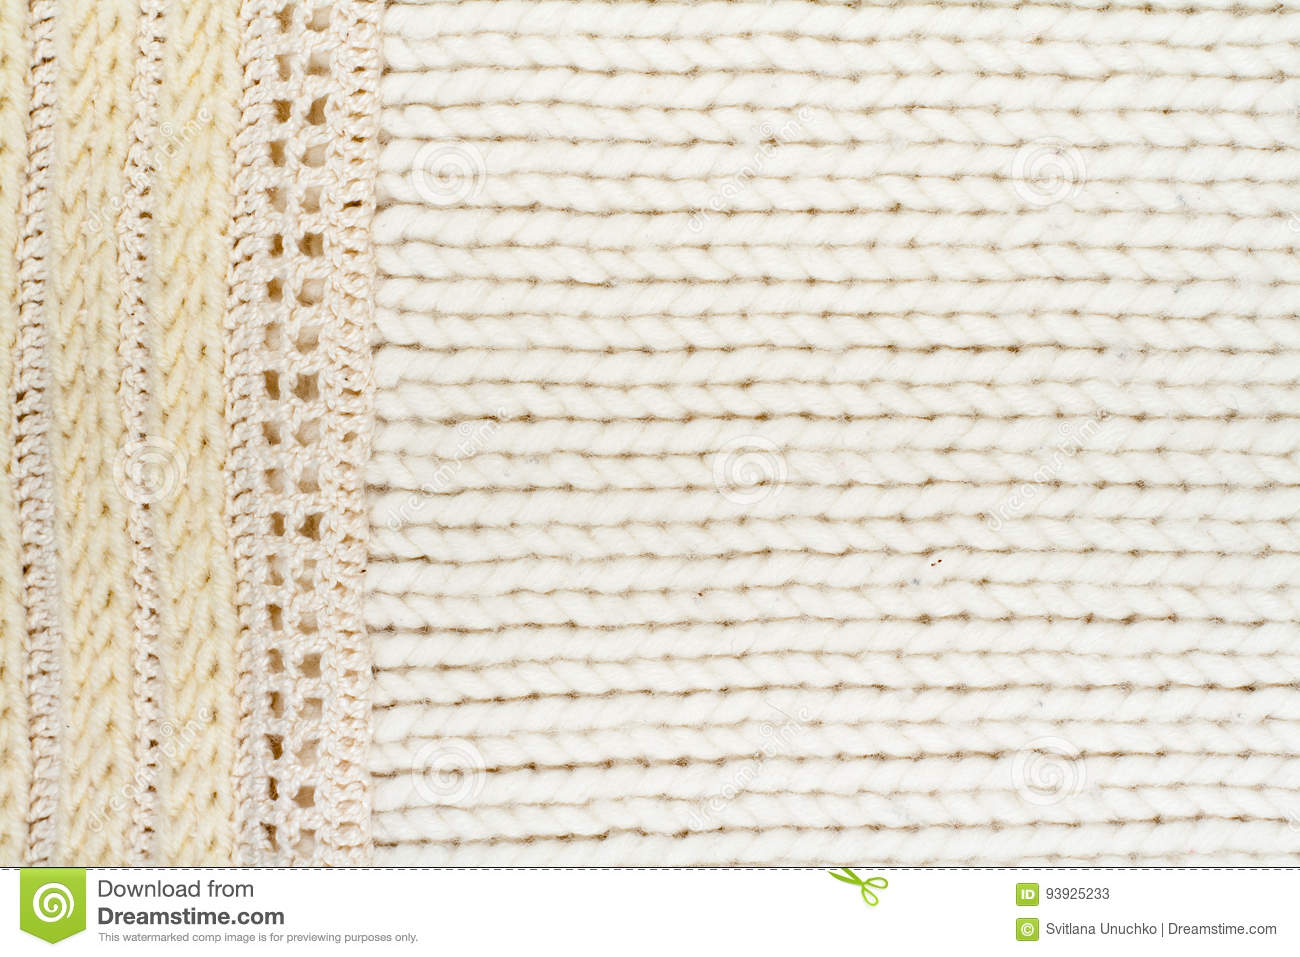 9061dc05c29b6 Sweater or scarf fabric texture large knitting. Knitted jersey background  with a relief pattern. Braids in knitting . Wool hand- machine